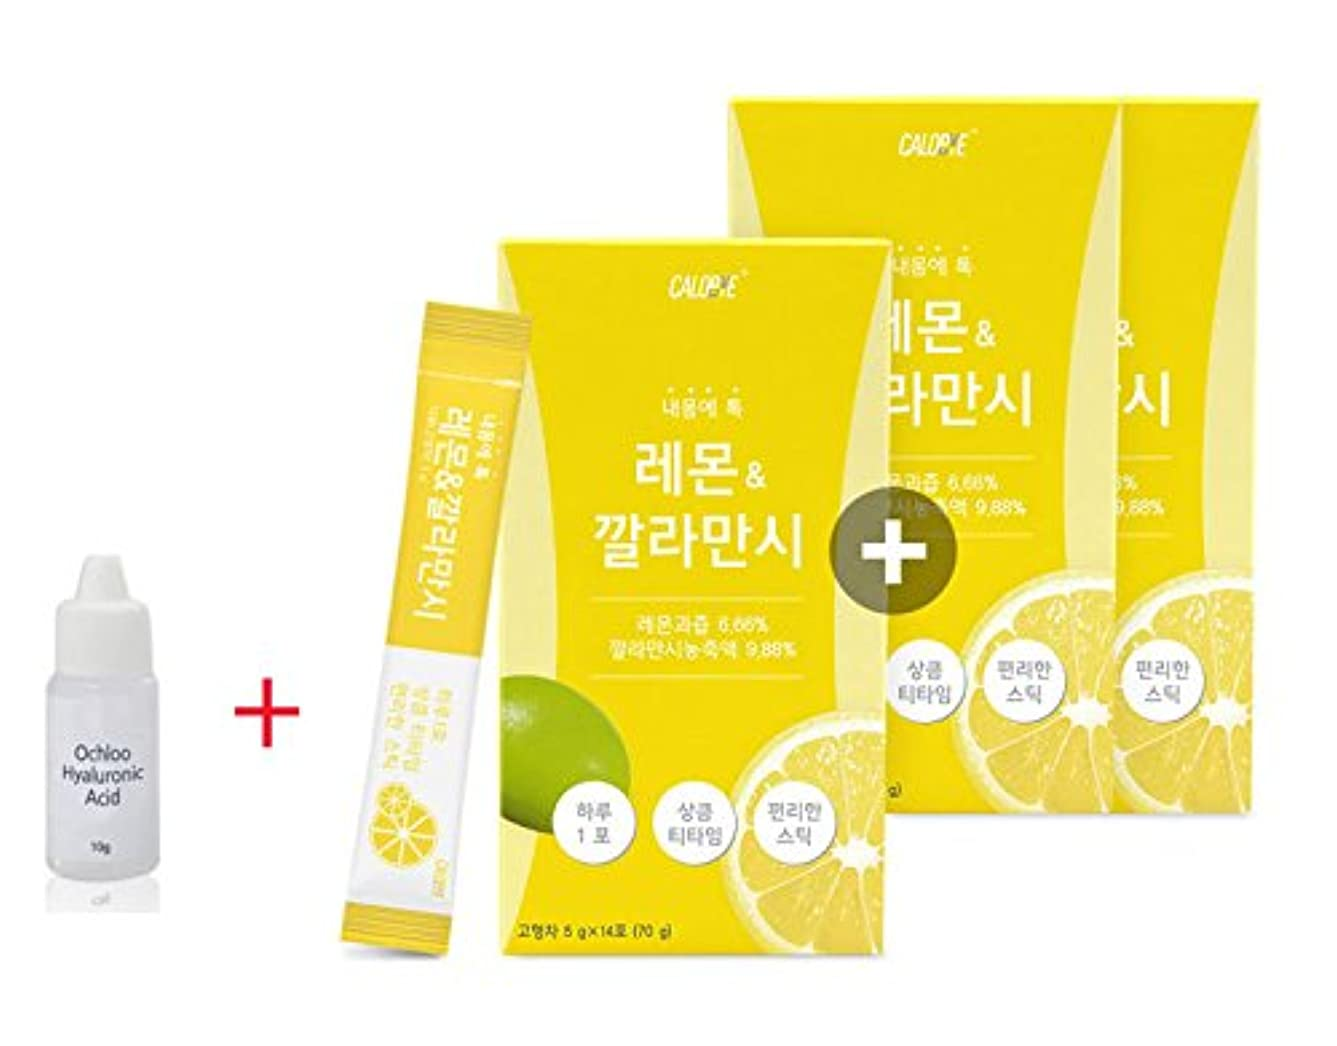 エッセイ社員バーゲンCALOBYE Lemon&Calamansi Stick Type 2+1 (total 42sticks) ダイエット用/Calamansi concentrate juice/Lemon concentrate juice...